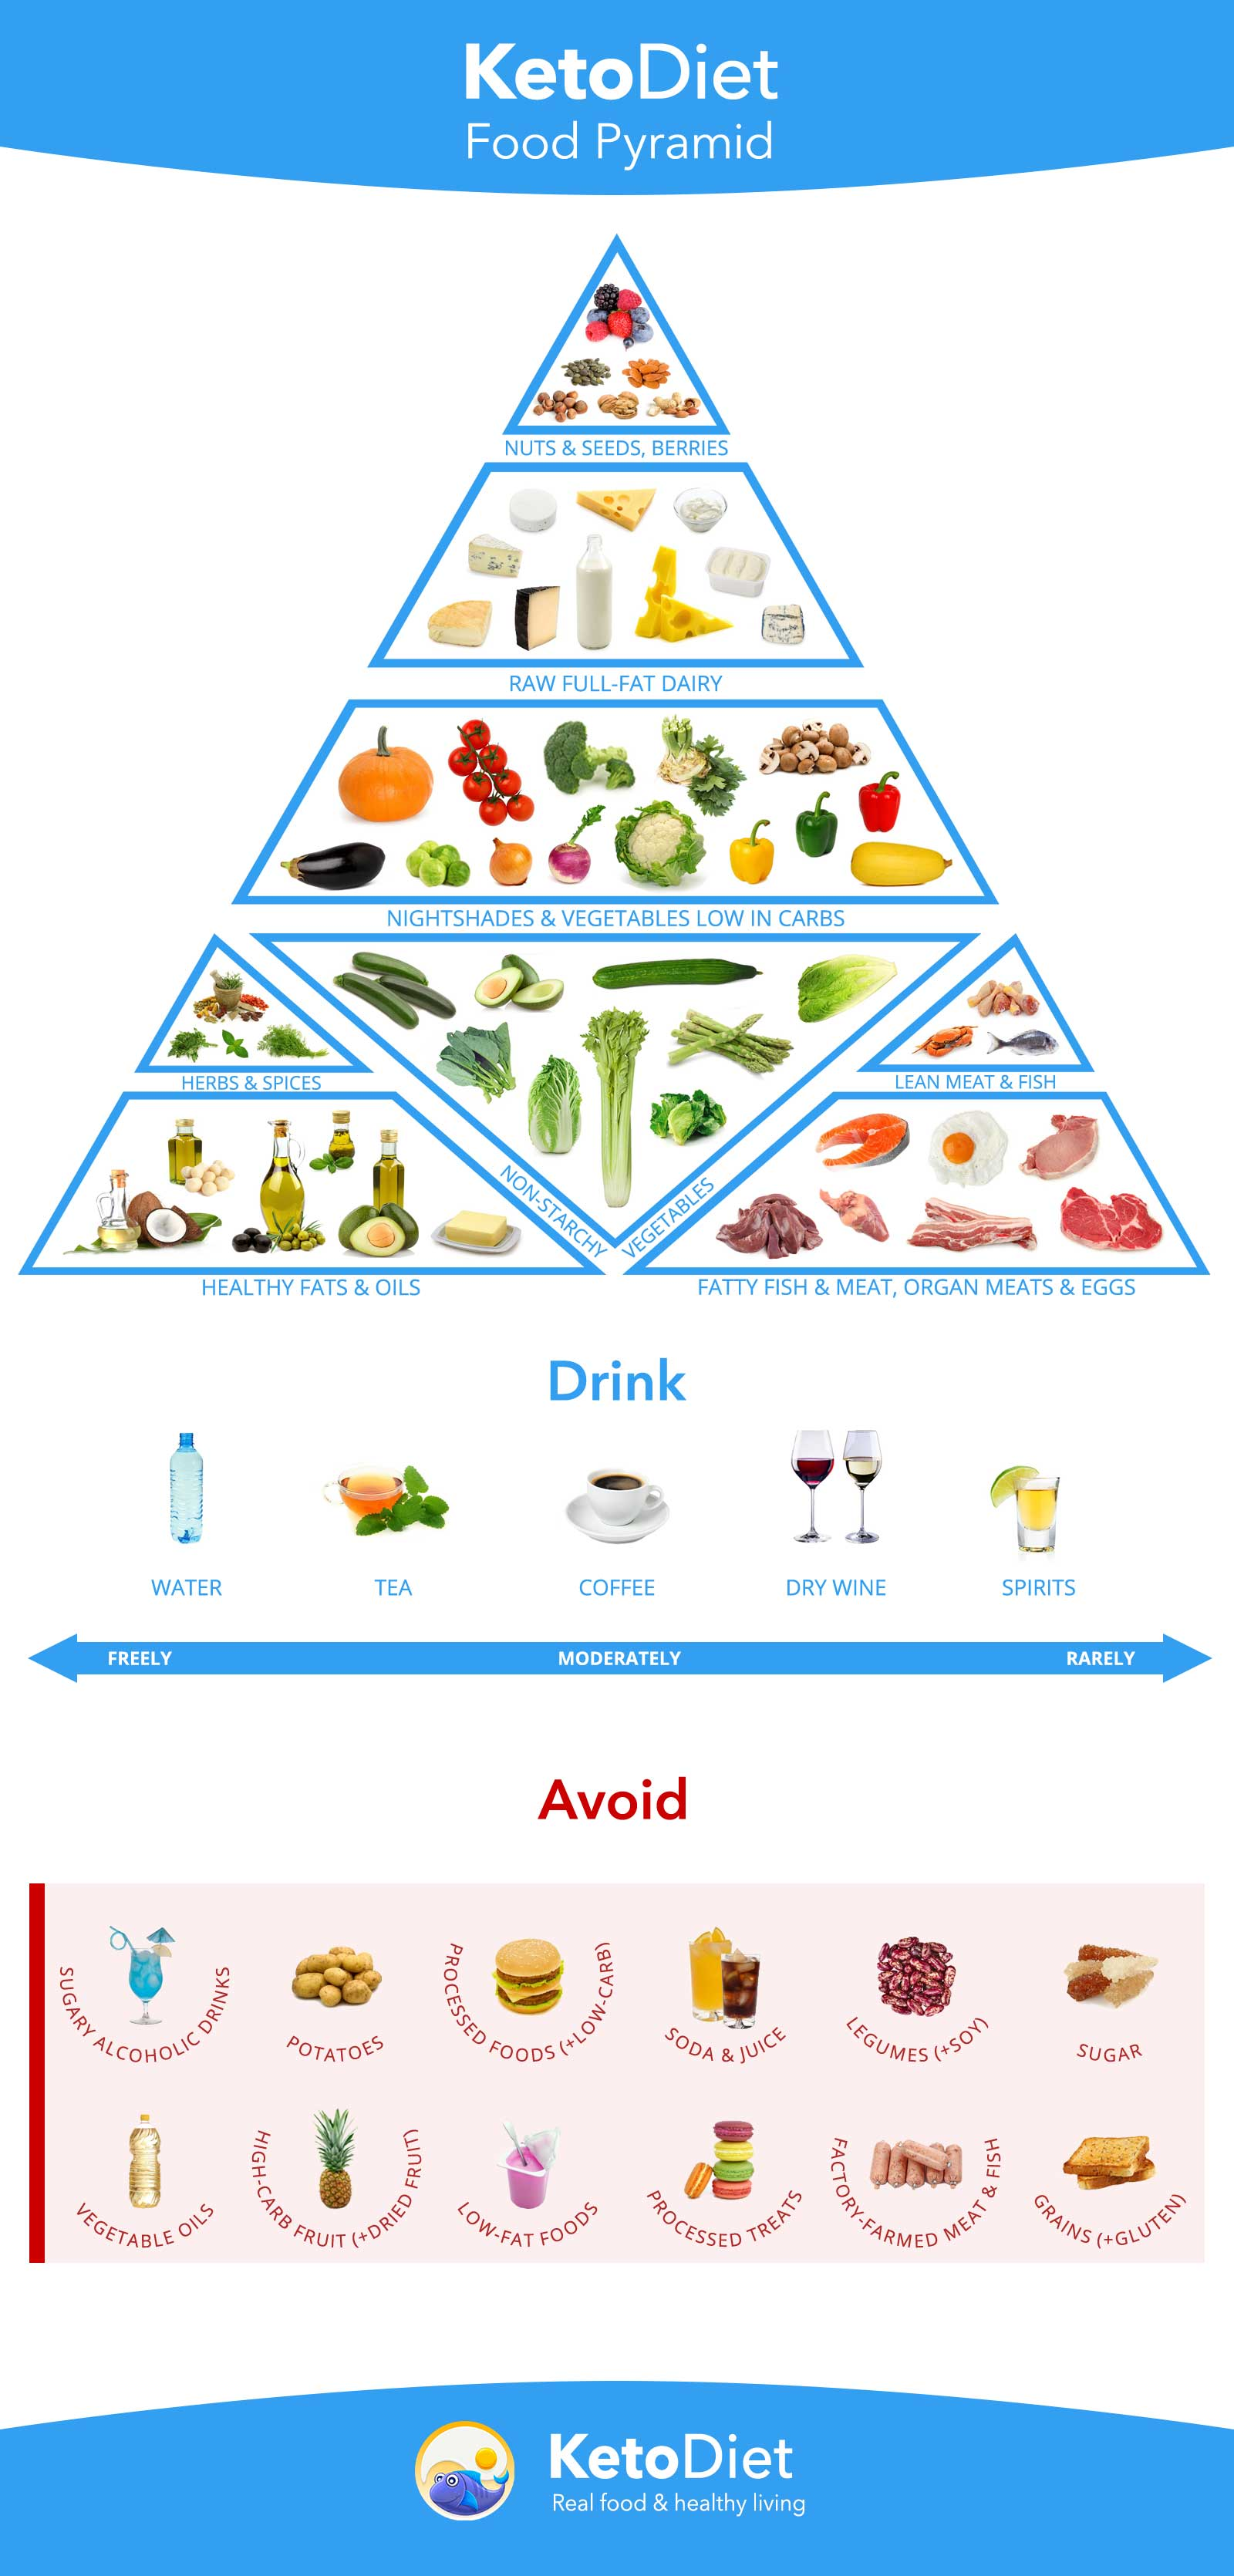 Adorable image intended for keto food pyramid printable